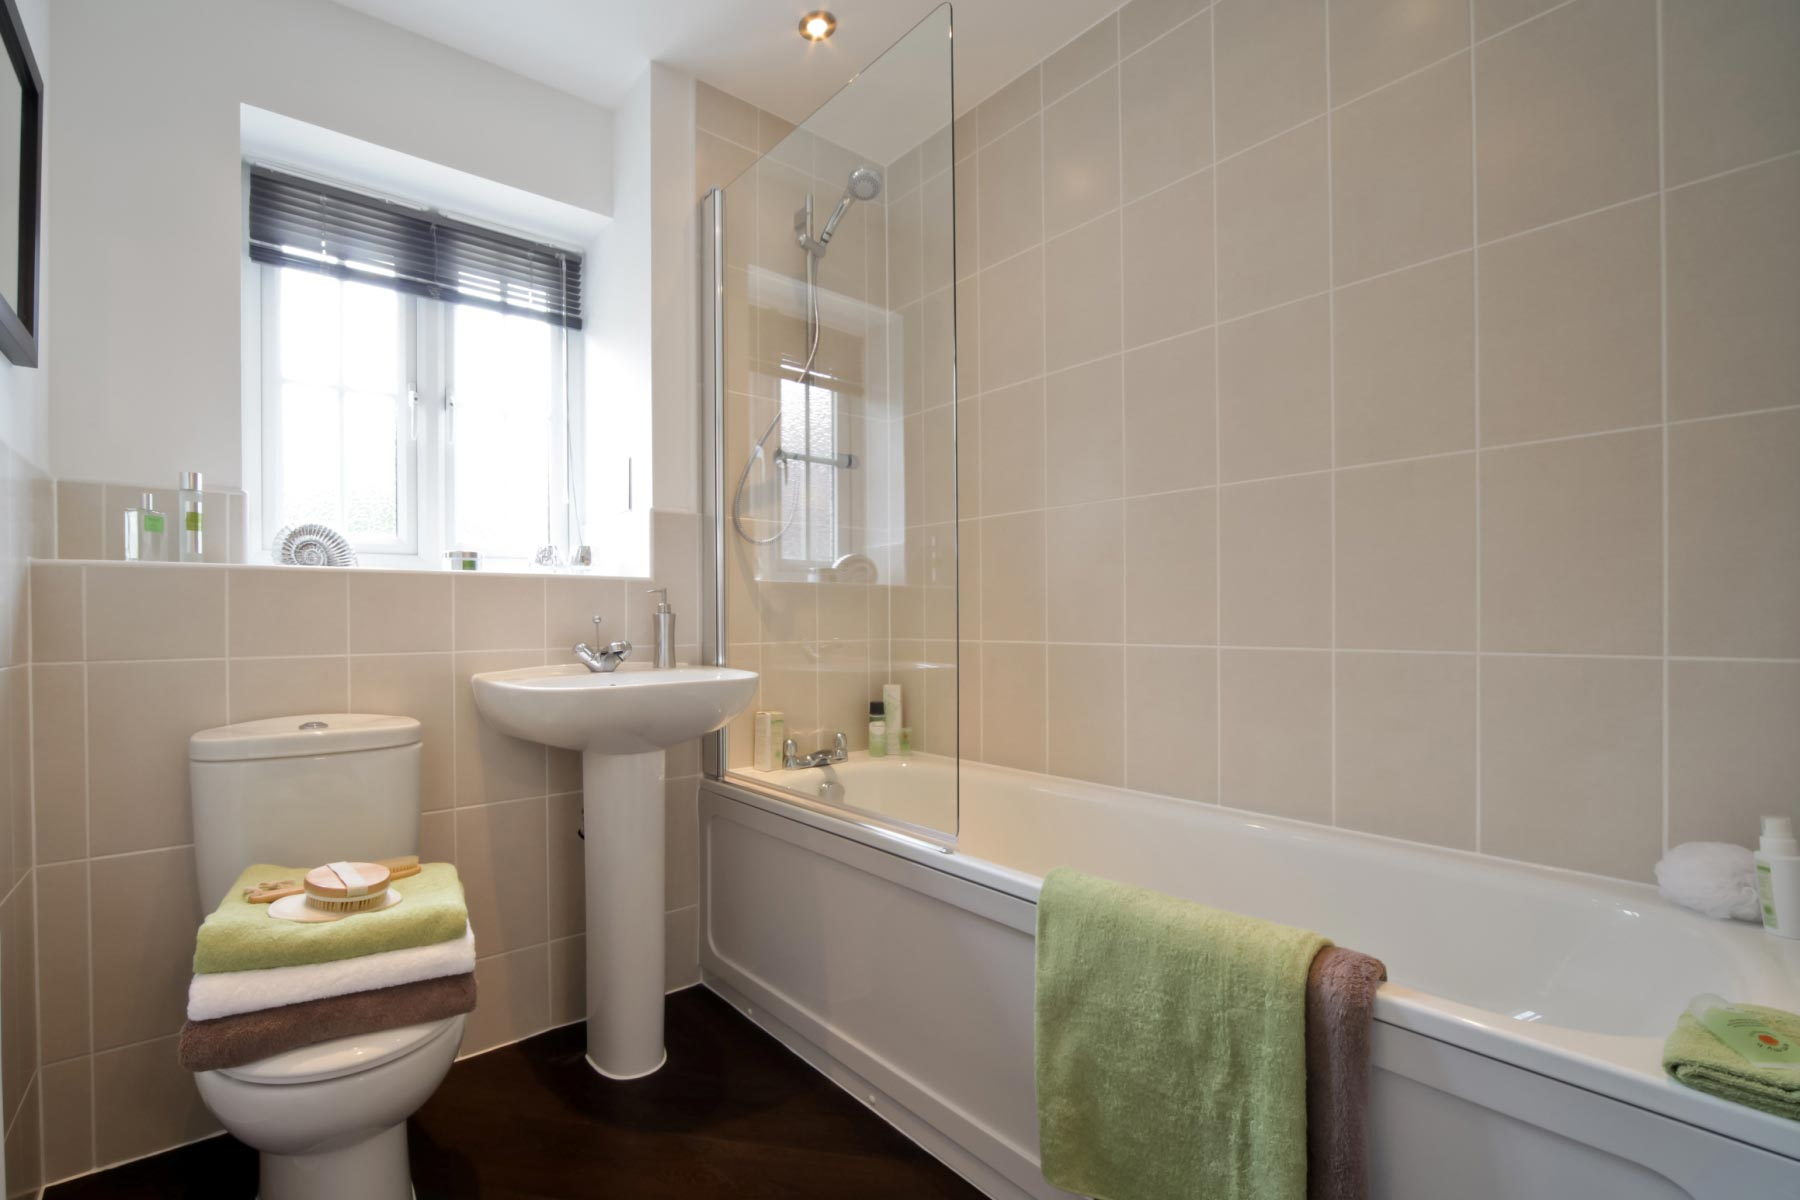 Taylor Wimpey - Typical bathroom